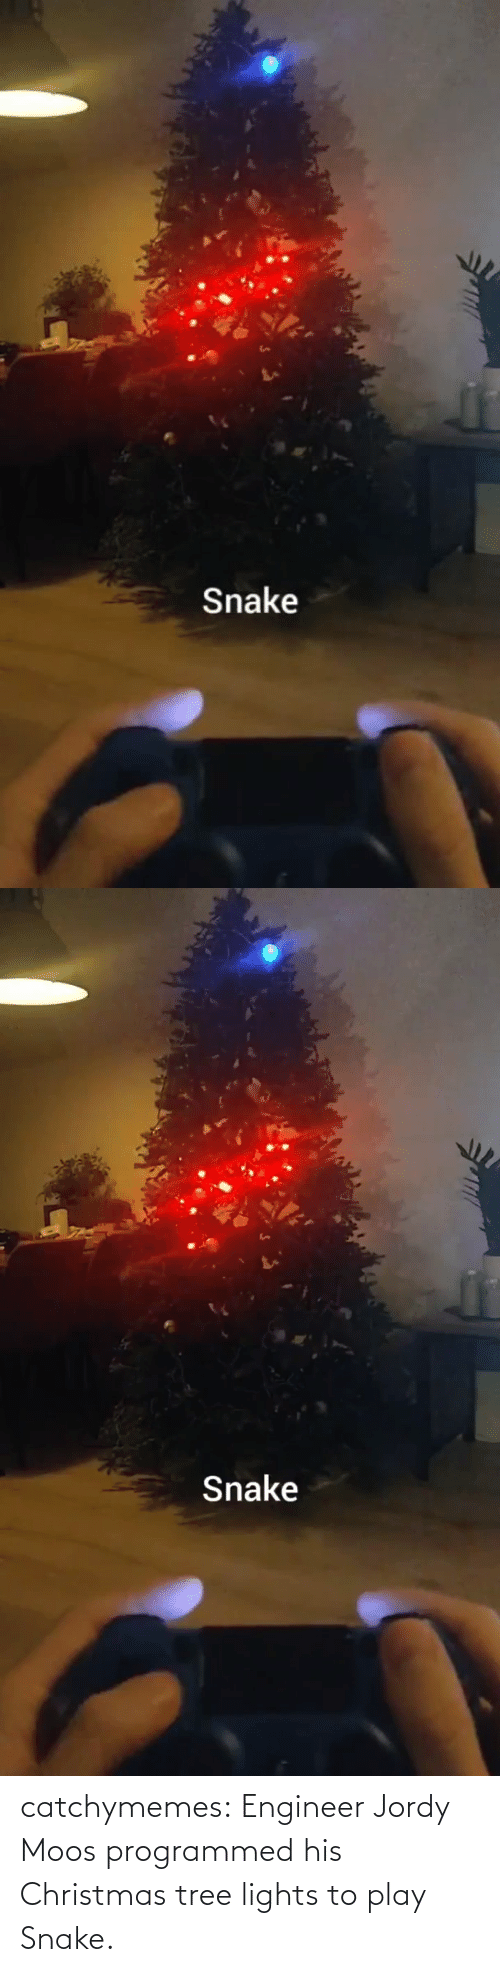 Programmed: Snake   Snake catchymemes:  Engineer Jordy Moos programmed his Christmas tree lights to play Snake.